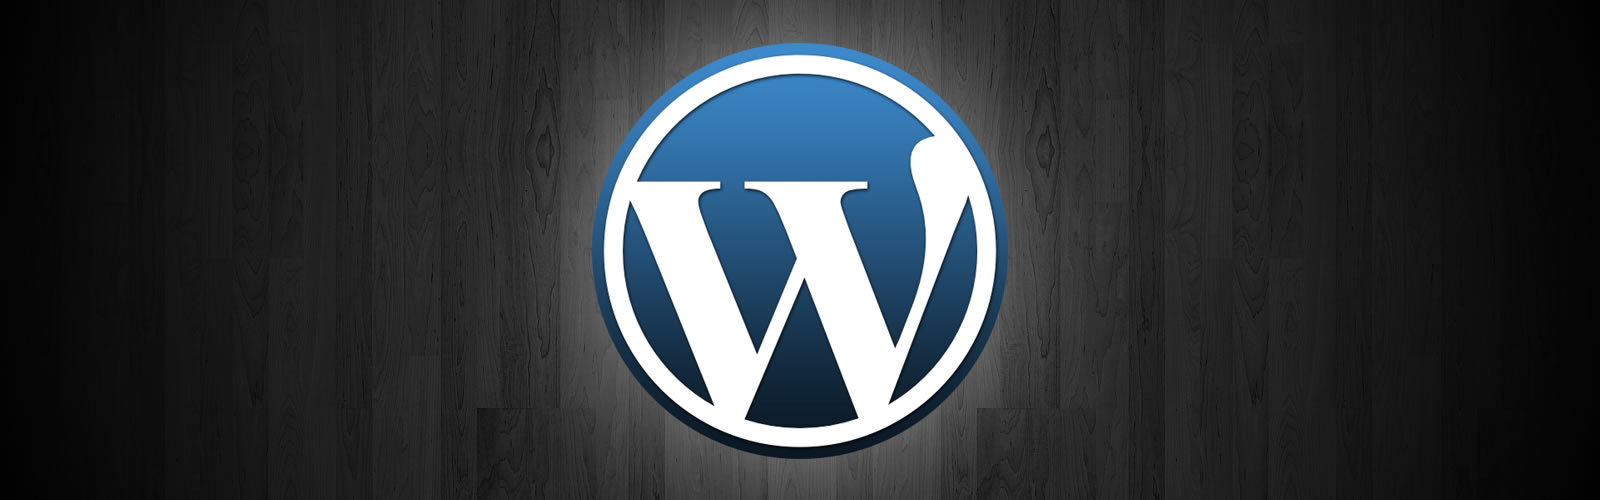 WordPress plugin development for fun and profit